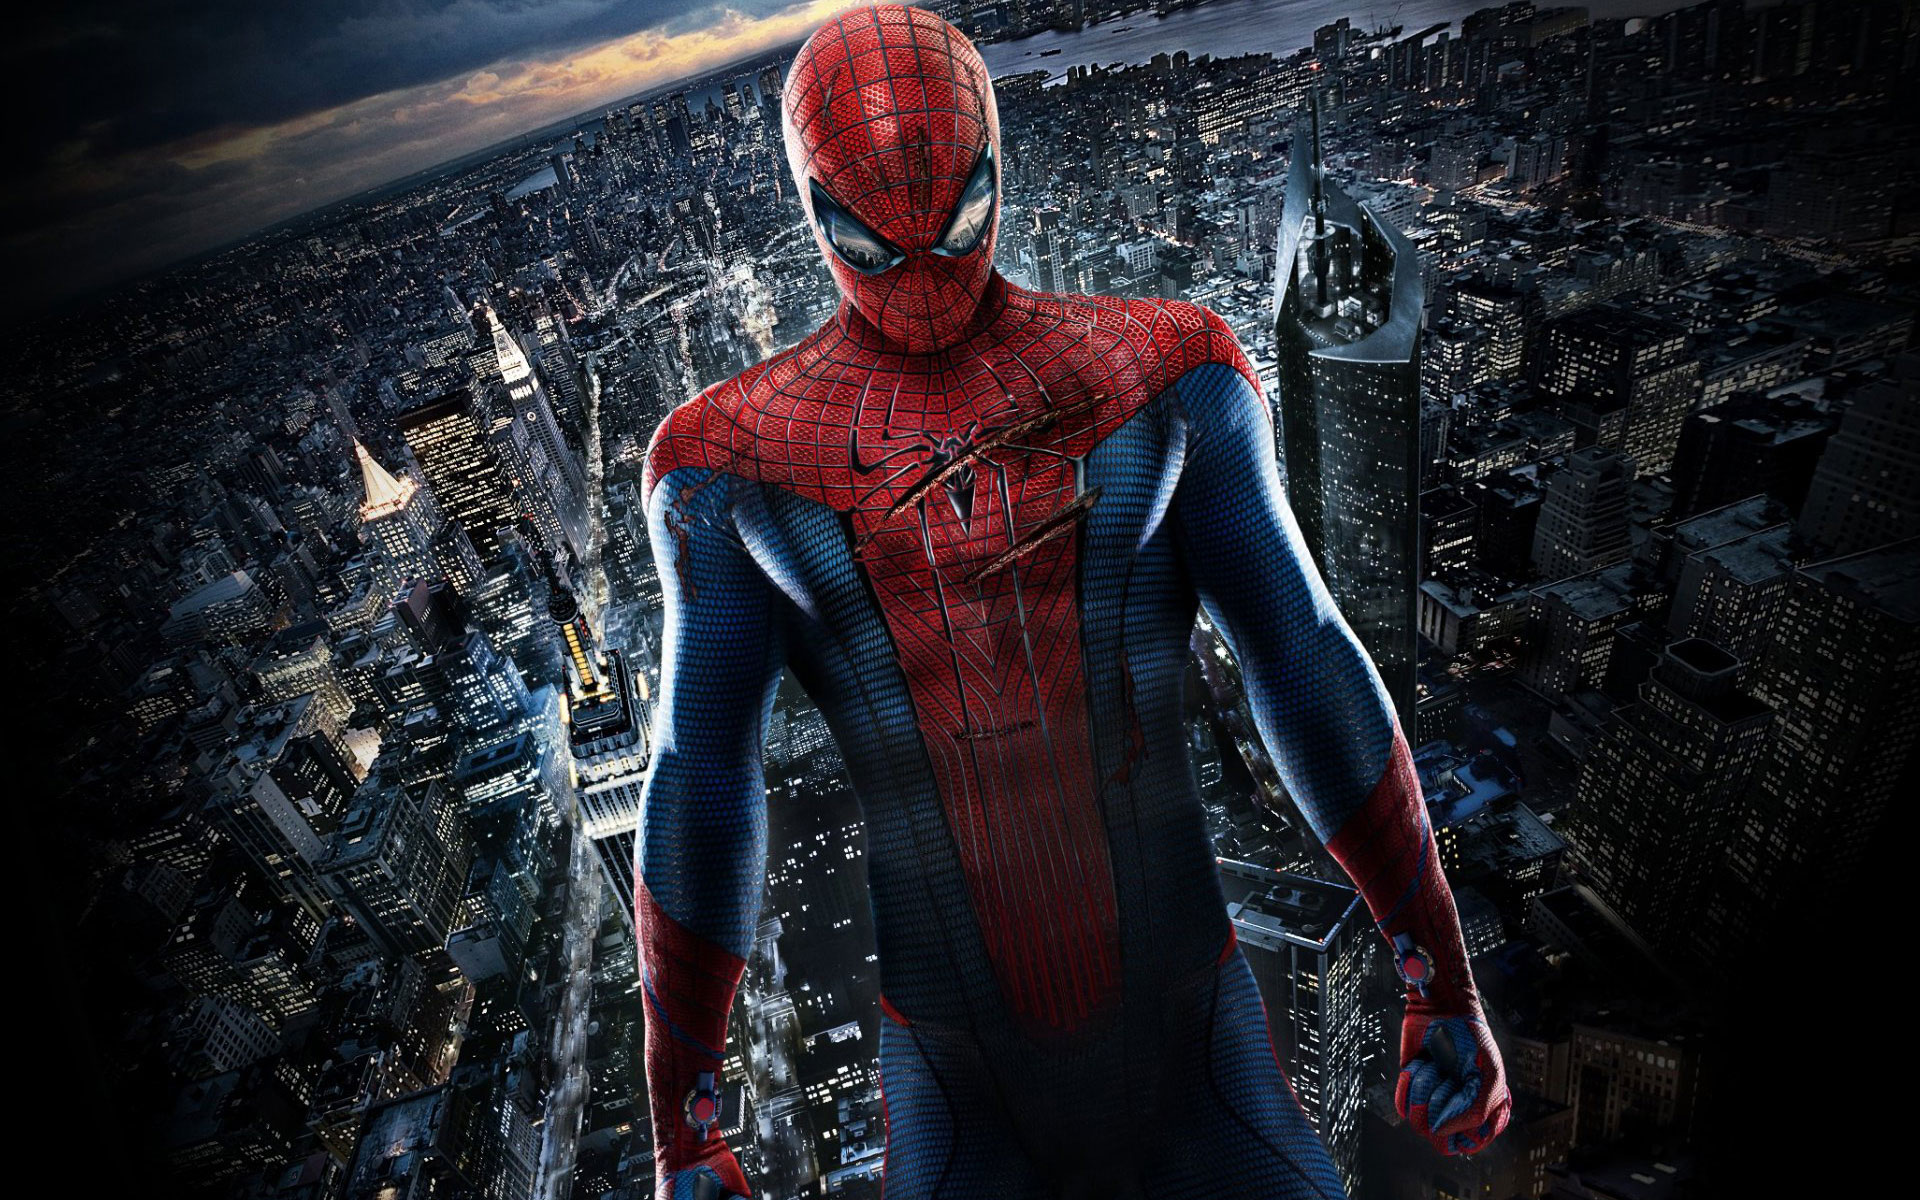 wallpaper.wiki-Spiderman-Desktop-Wallpapers-1-PIC-WPD002680